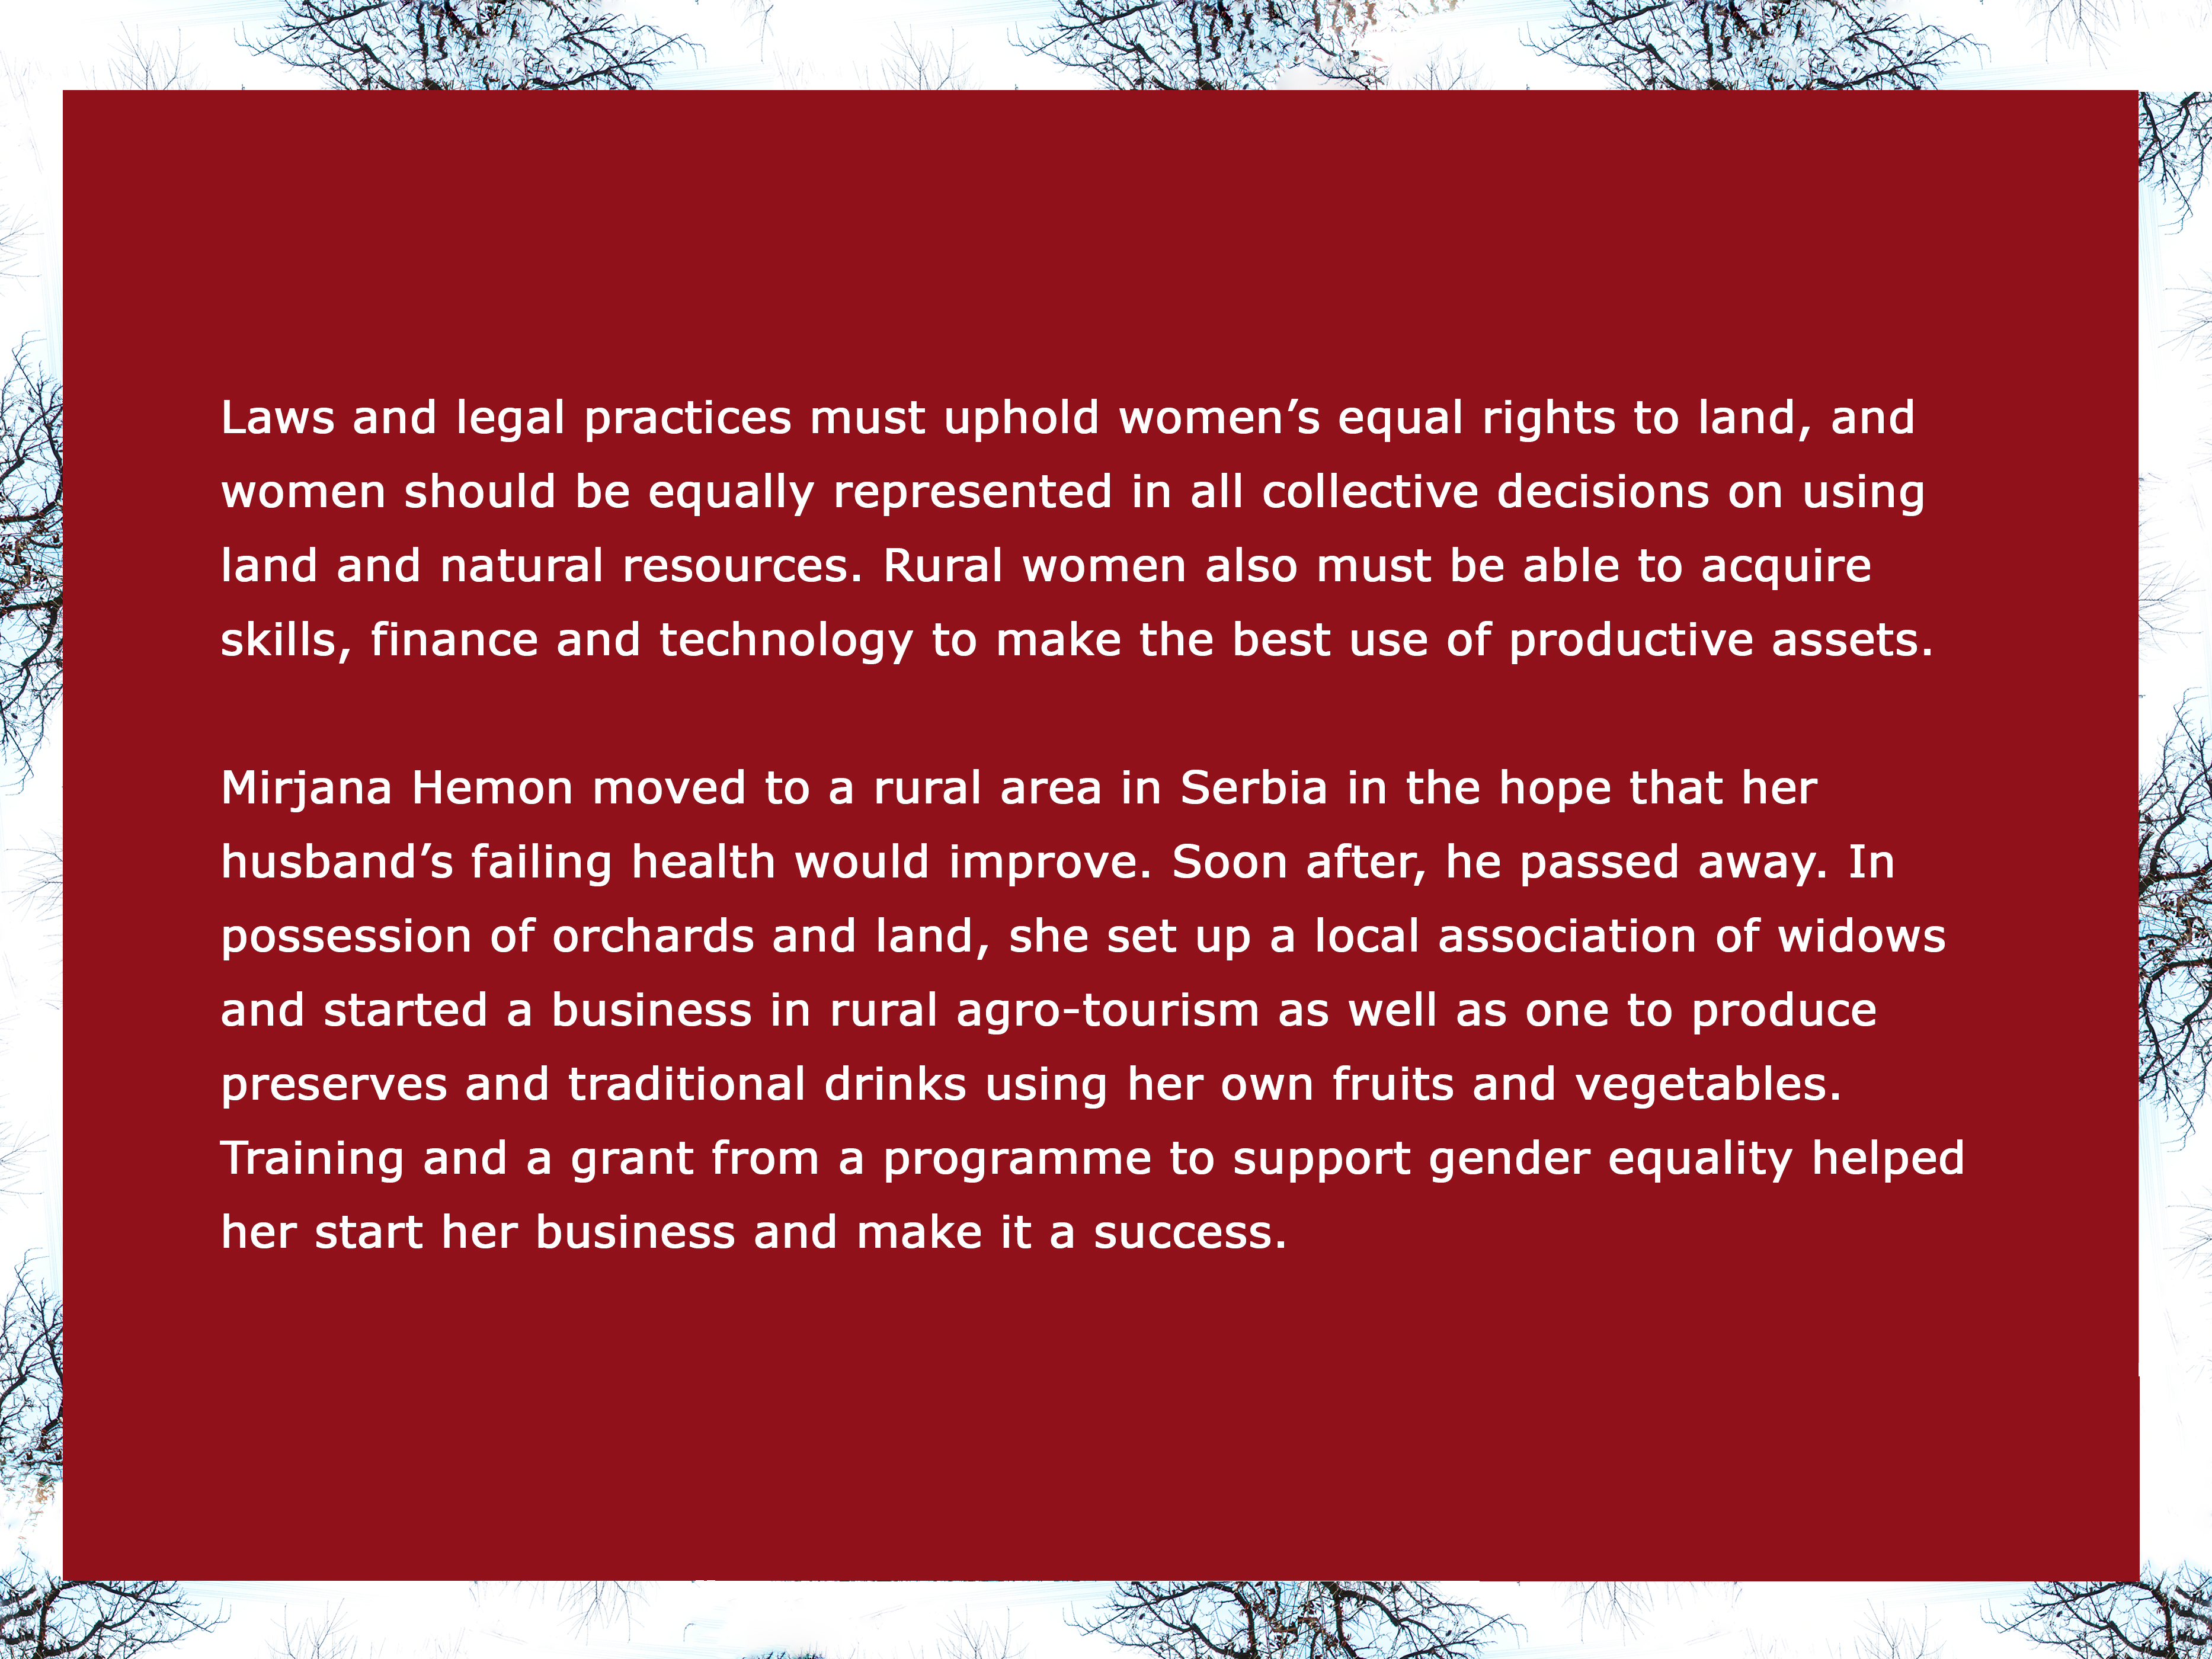 Laws and legal practices must uphold women's equal rights to land, and women should be equally represented in all collective decisions on using land and natural resources